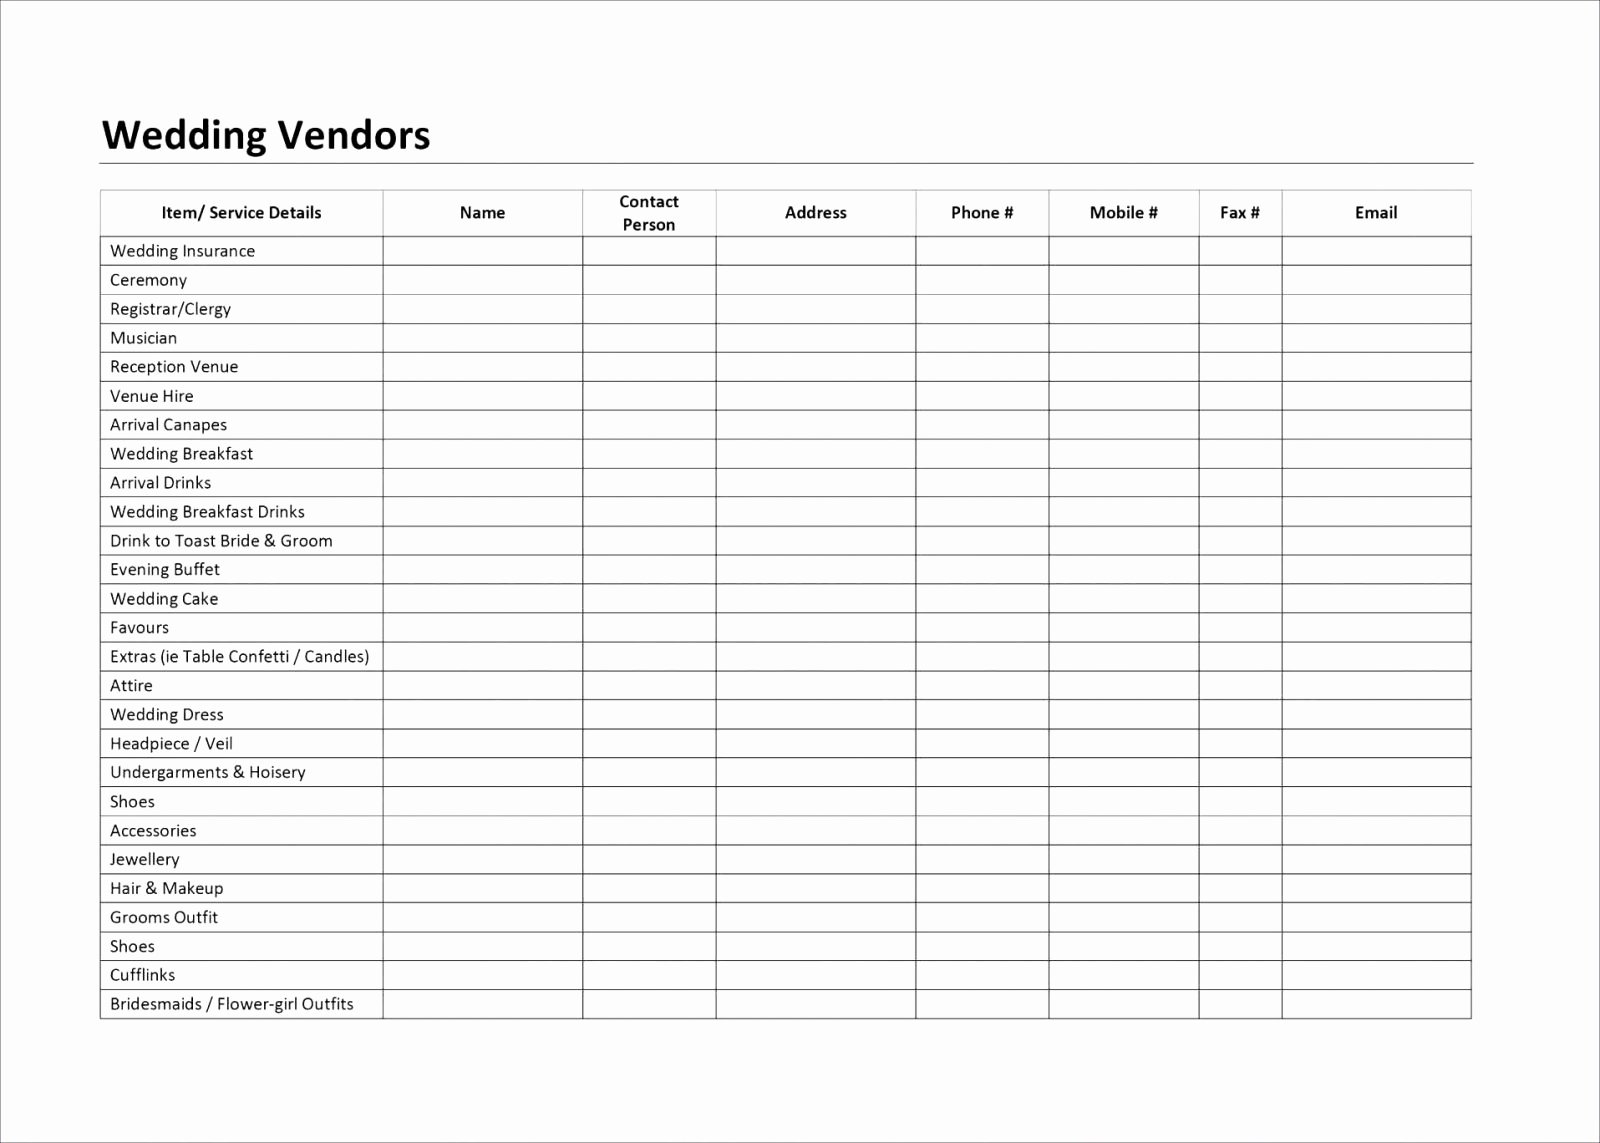 Simple Bookkeeping Spreadsheet Template Elegant Small Business Spreadsheet Templates Free Kubre Euforic Co